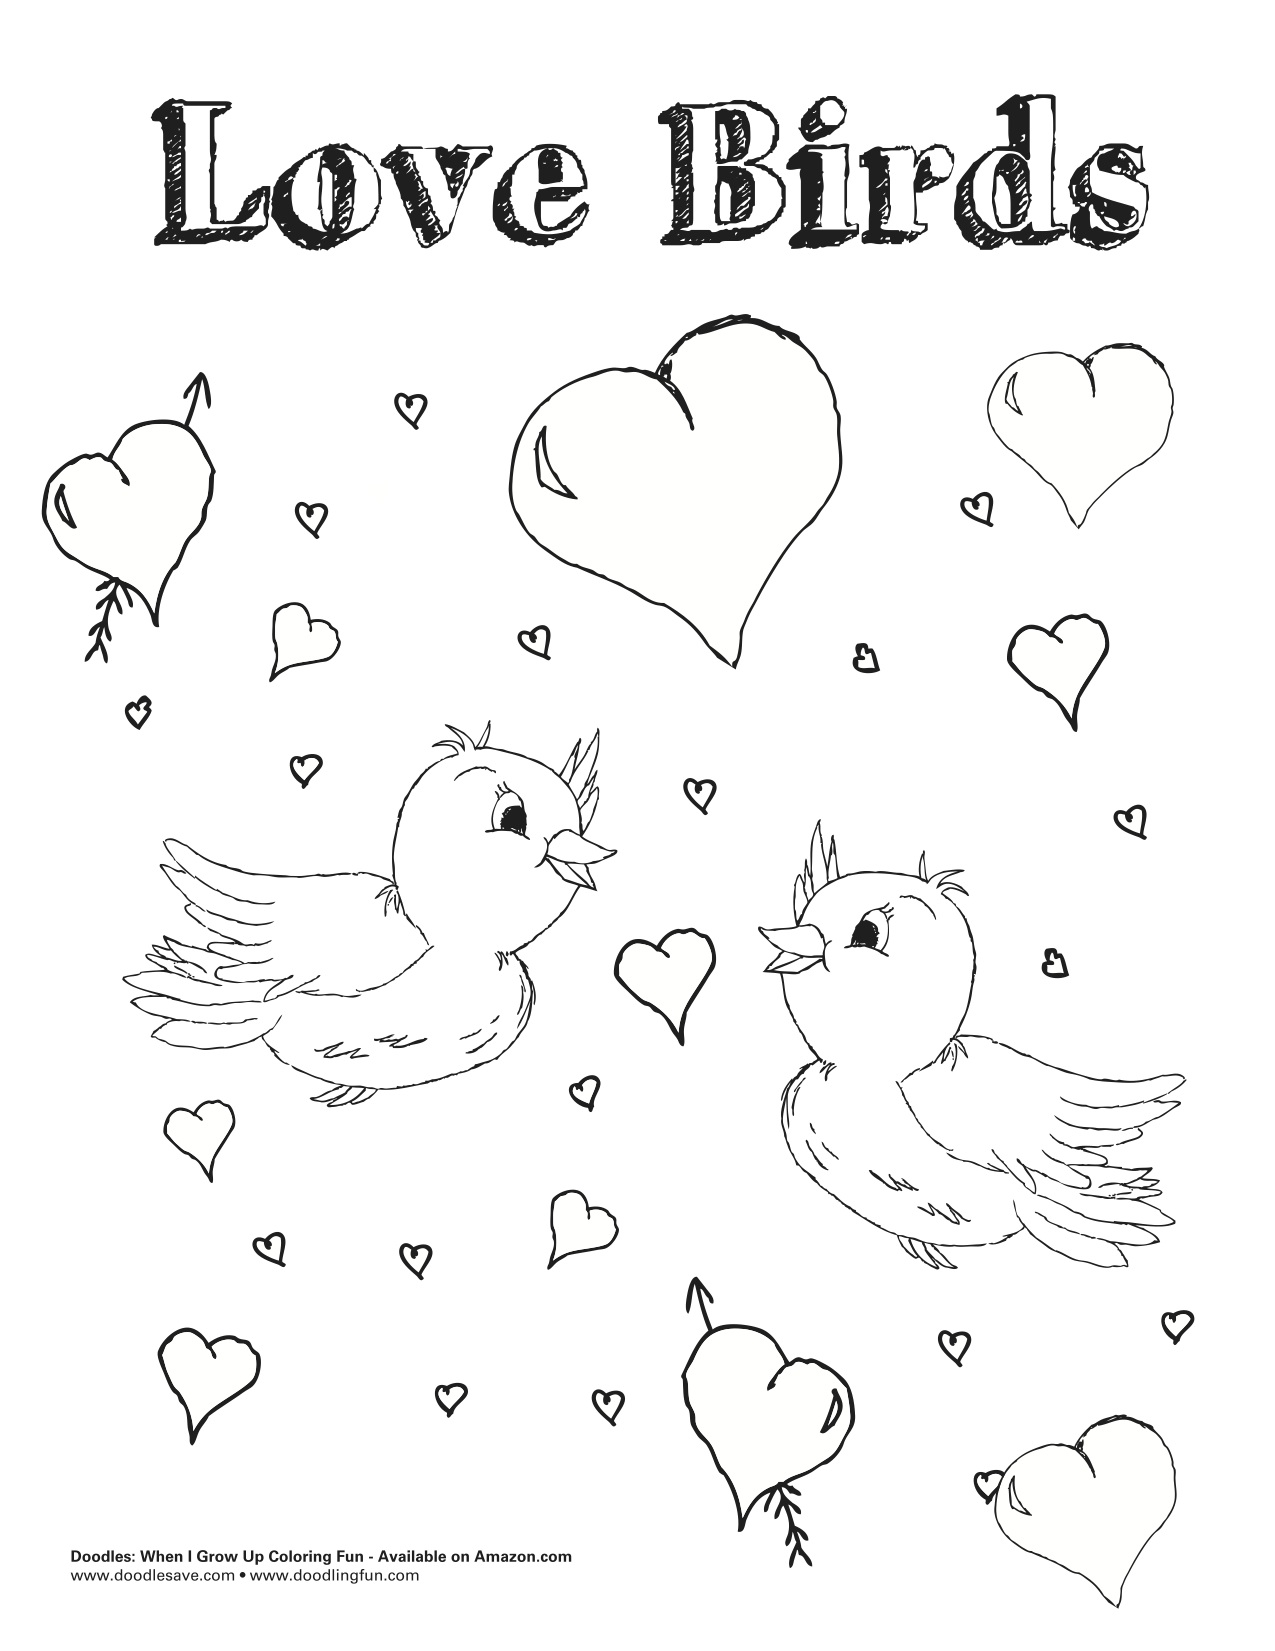 Valentines Day Doodle Coloring Sheets